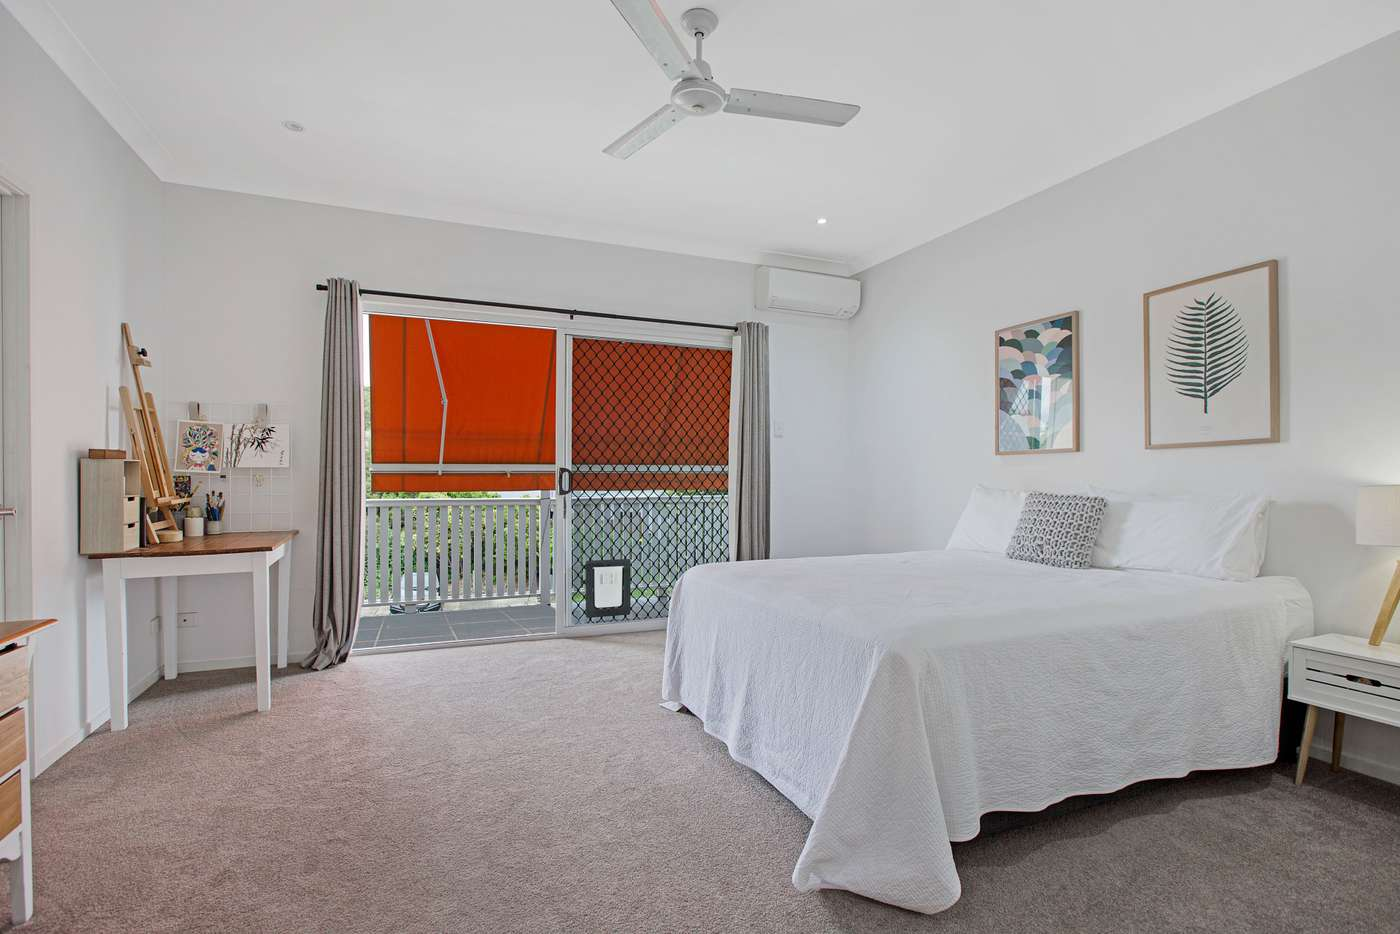 Seventh view of Homely house listing, 8 Melia Court, Eatons Hill QLD 4037